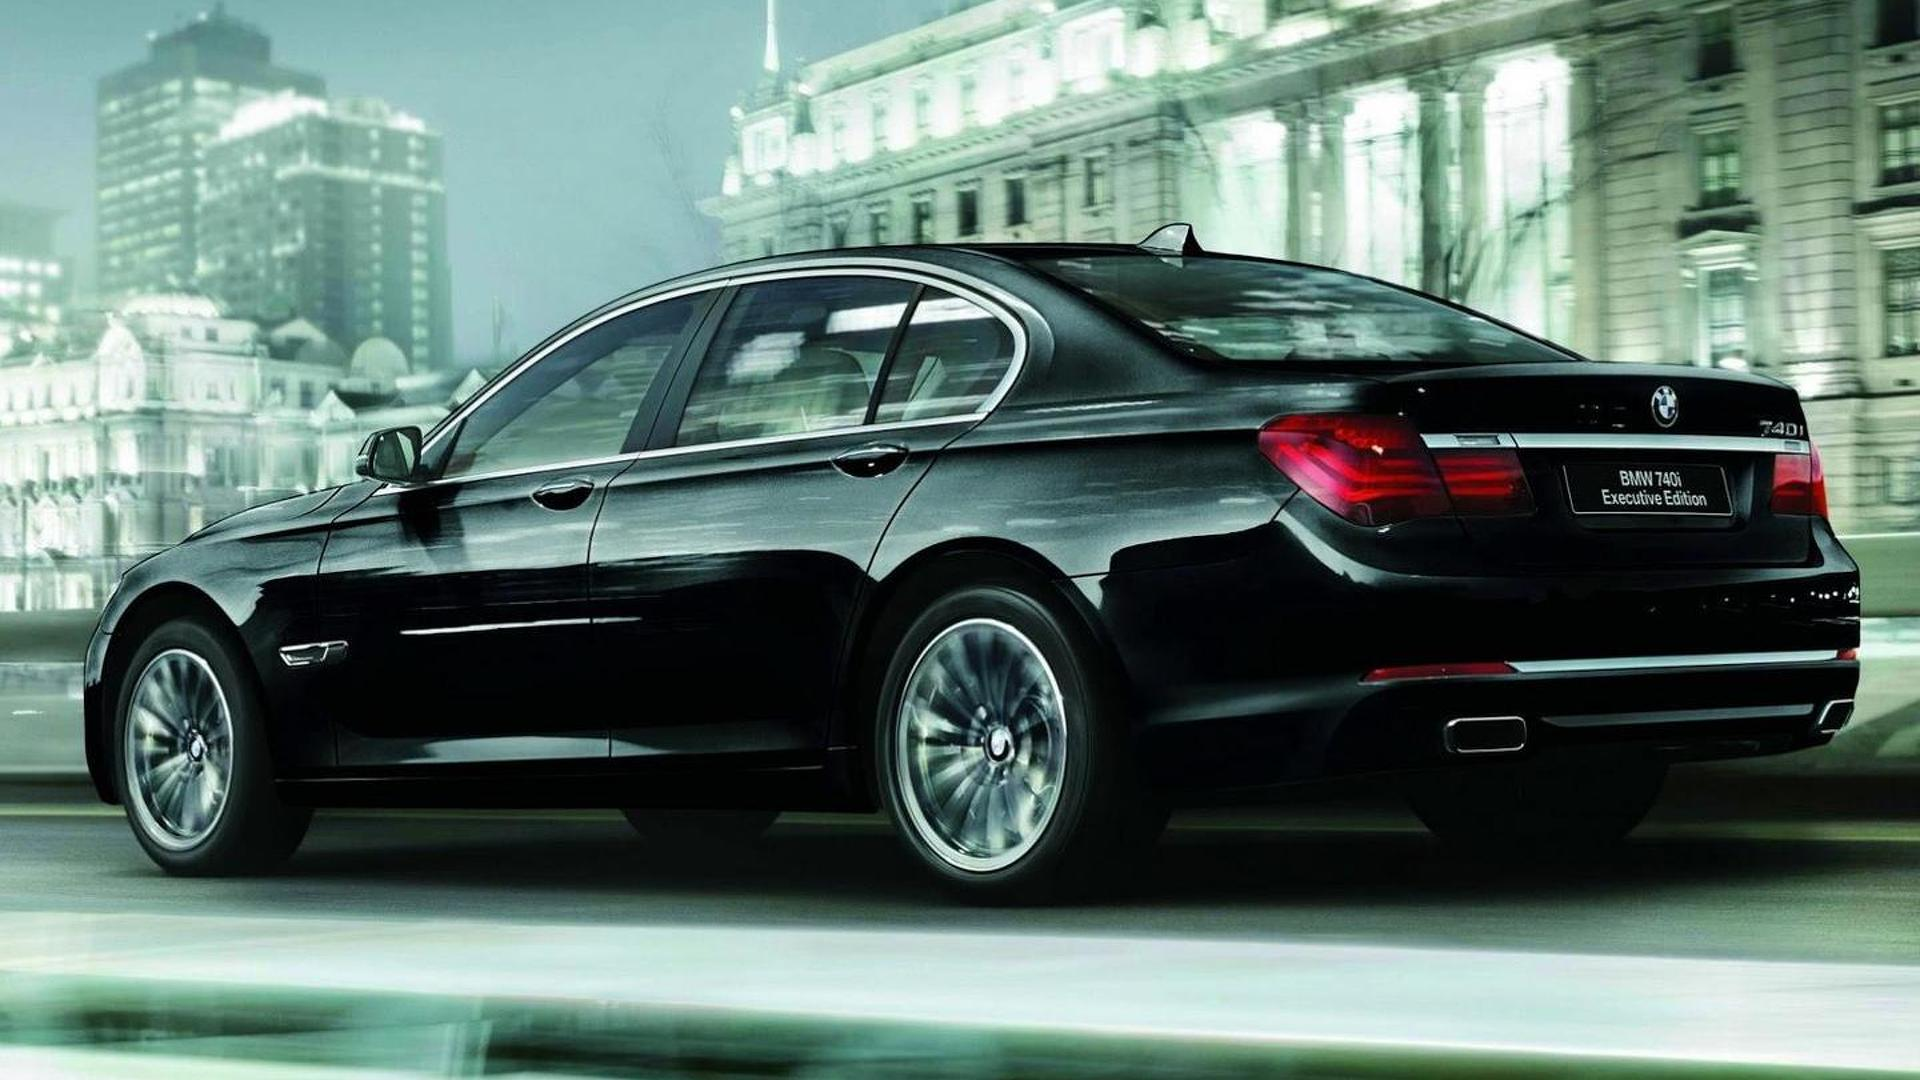 BMW 740i Executive Edition launched in Japan